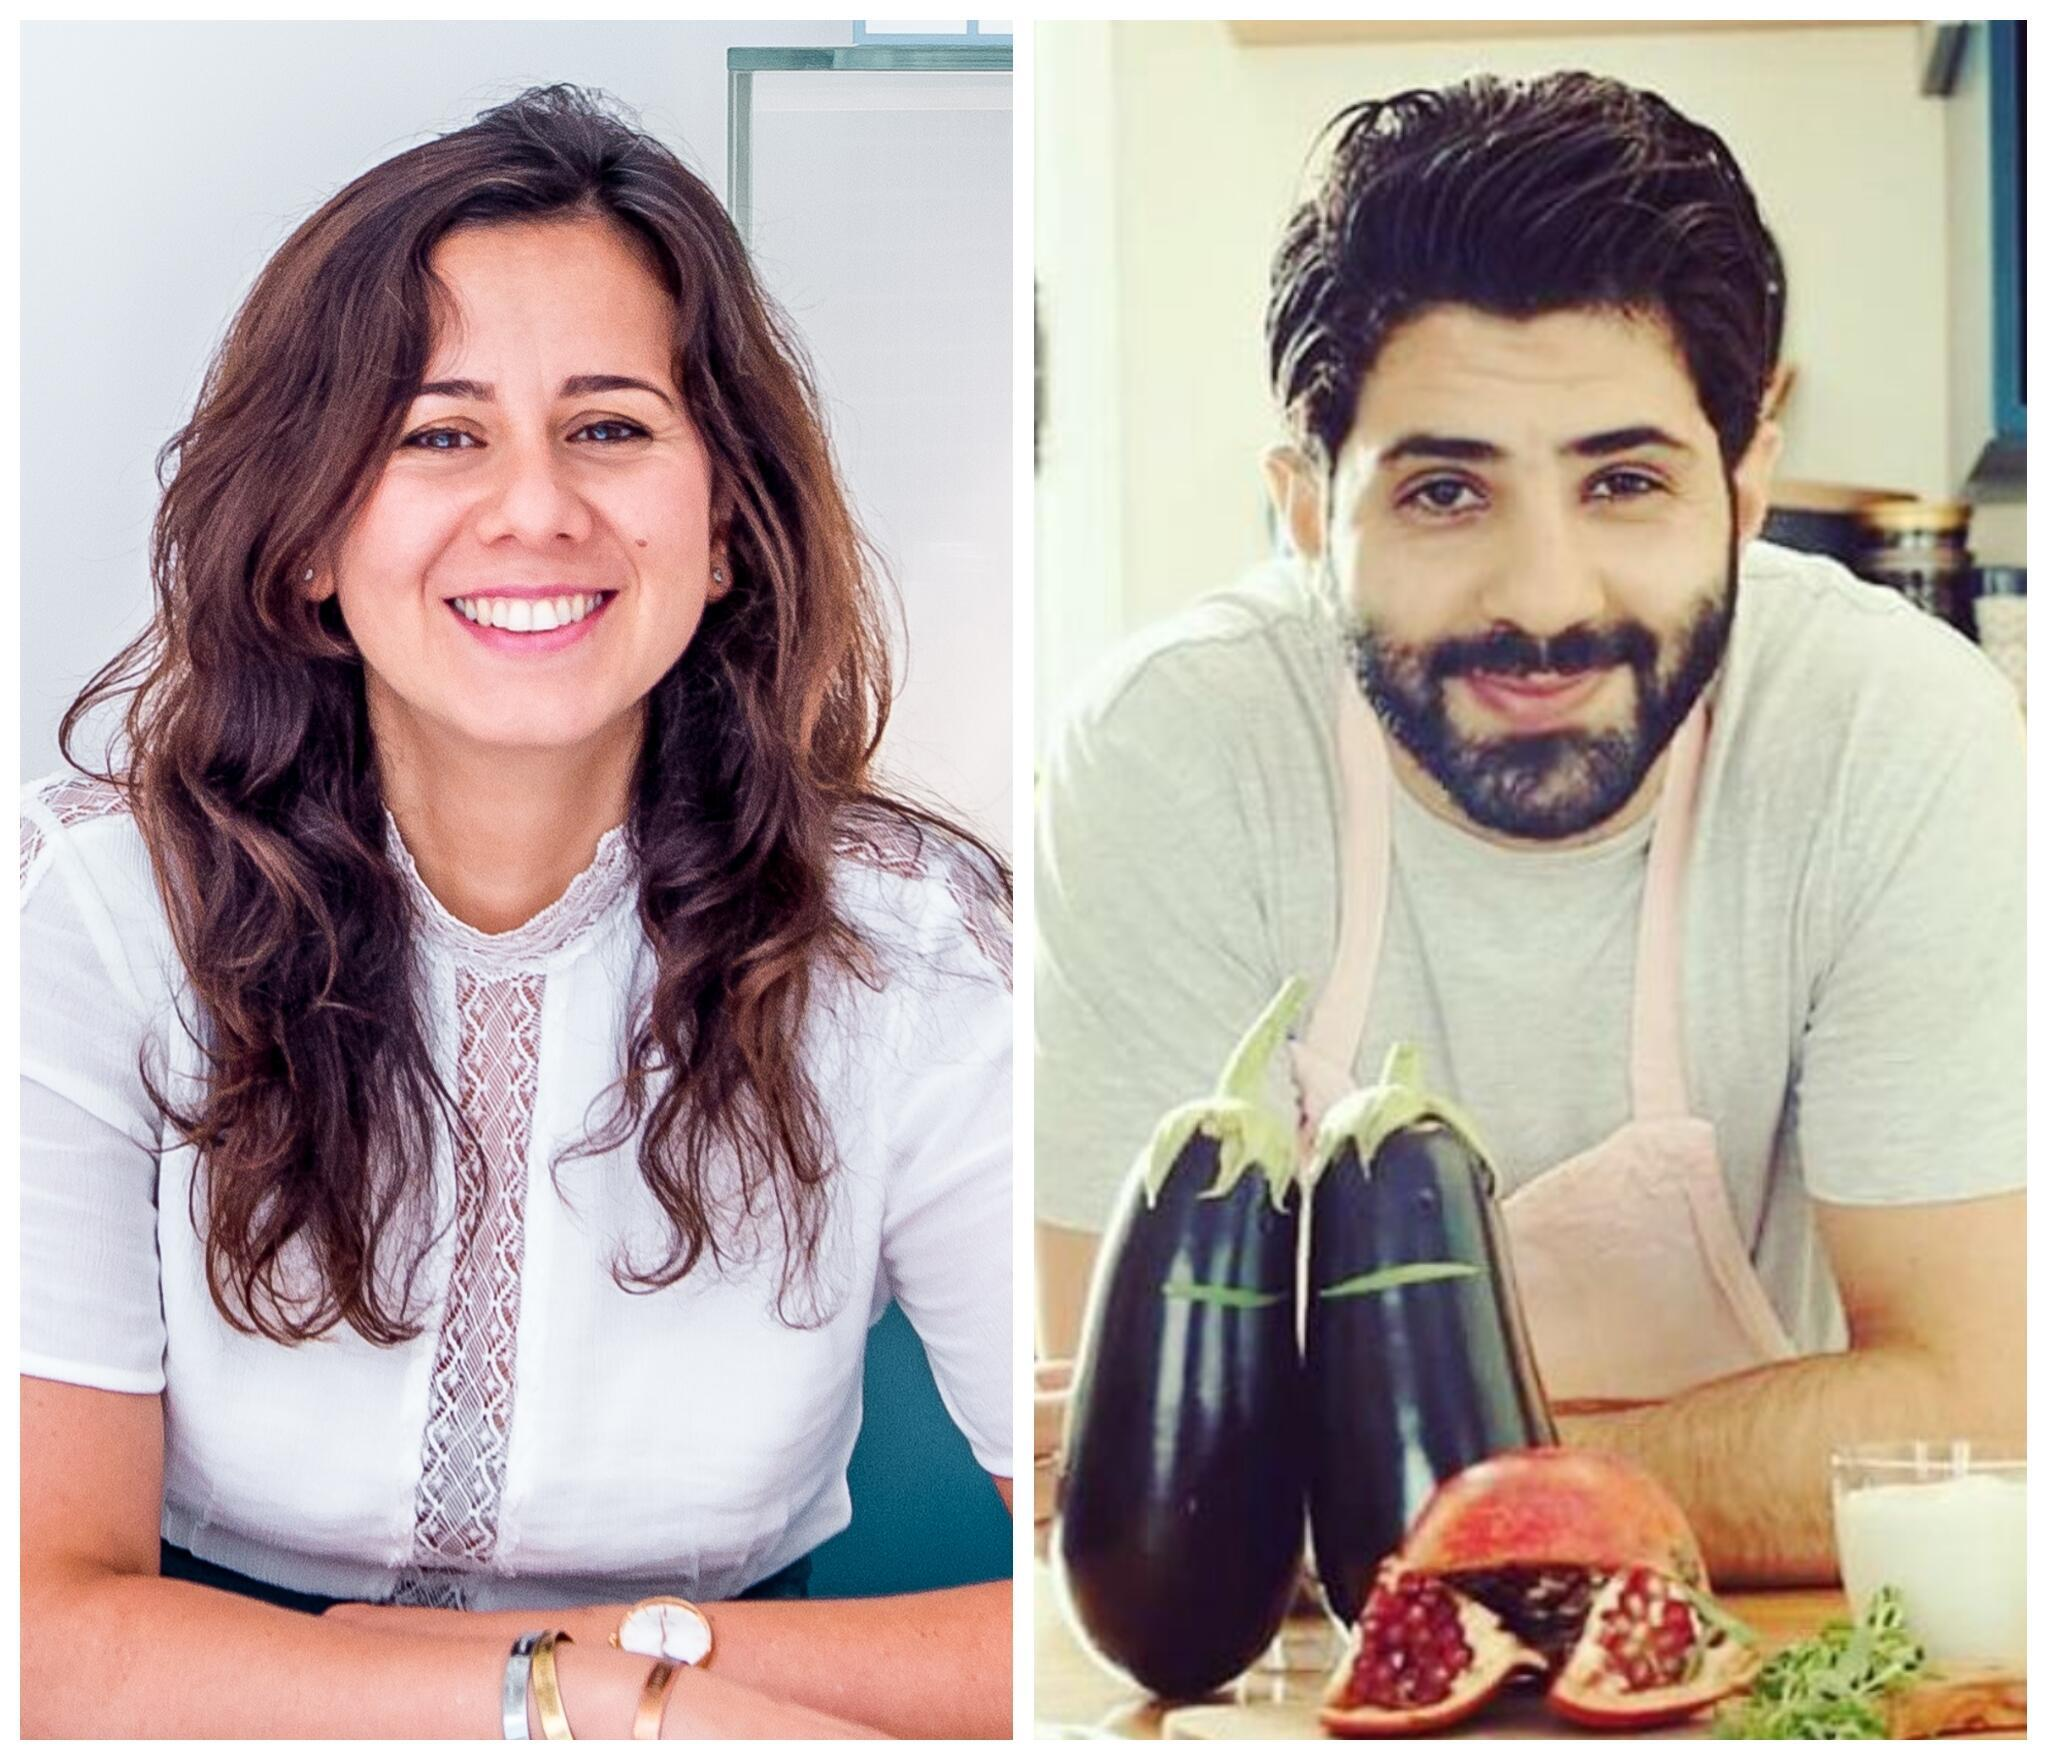 Myriam Sabet (L) and Chef Emad (R) explore recipes from the Levant and their childhood in Syria, served with their own twist